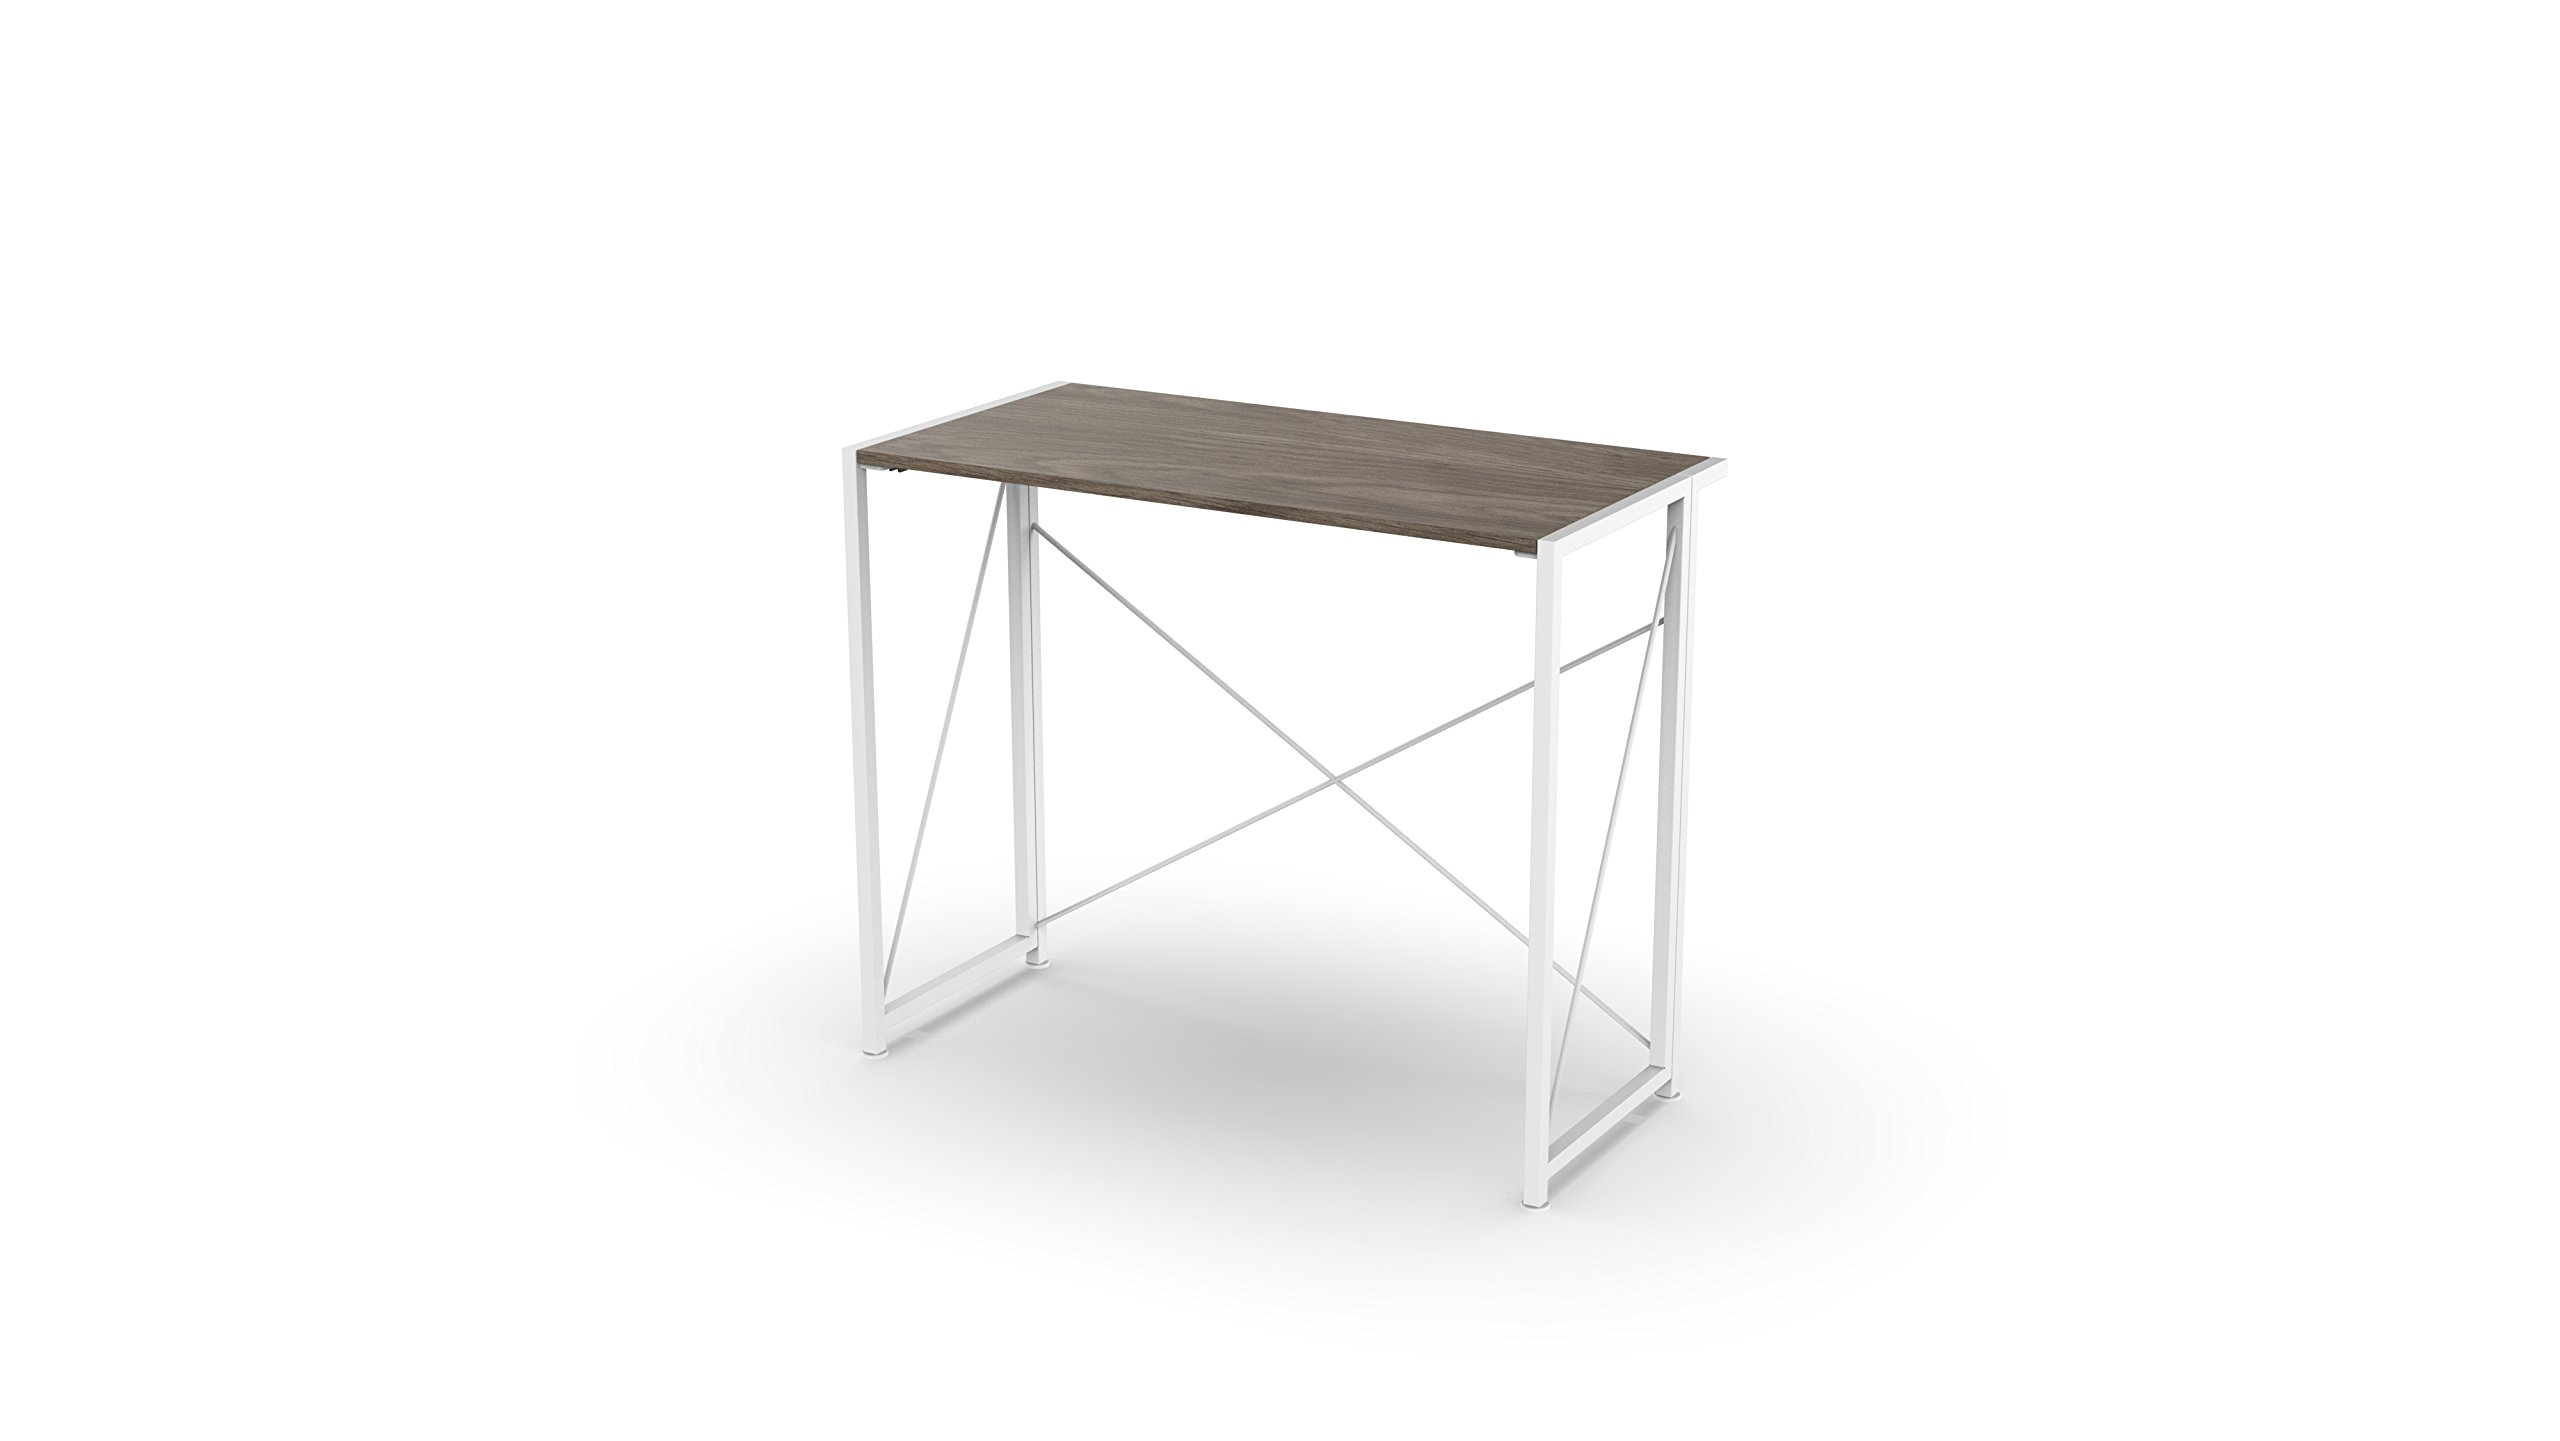 Urban Shop NK657279 Wood Folding Desk, White